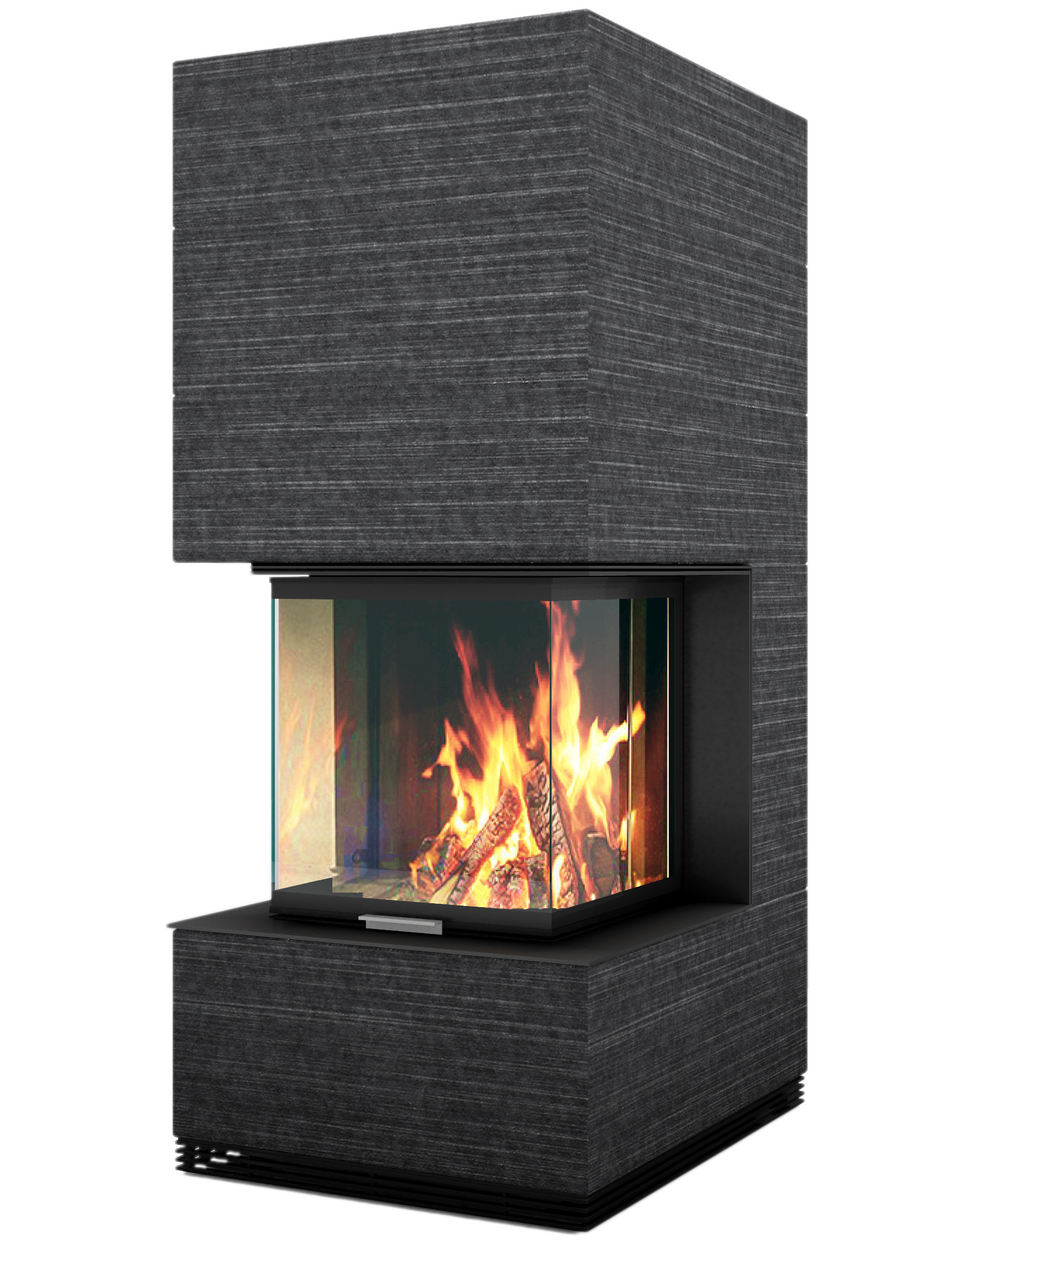 modelle monolith fire inside naturstein fen natursteinofen speicher kaminofen. Black Bedroom Furniture Sets. Home Design Ideas